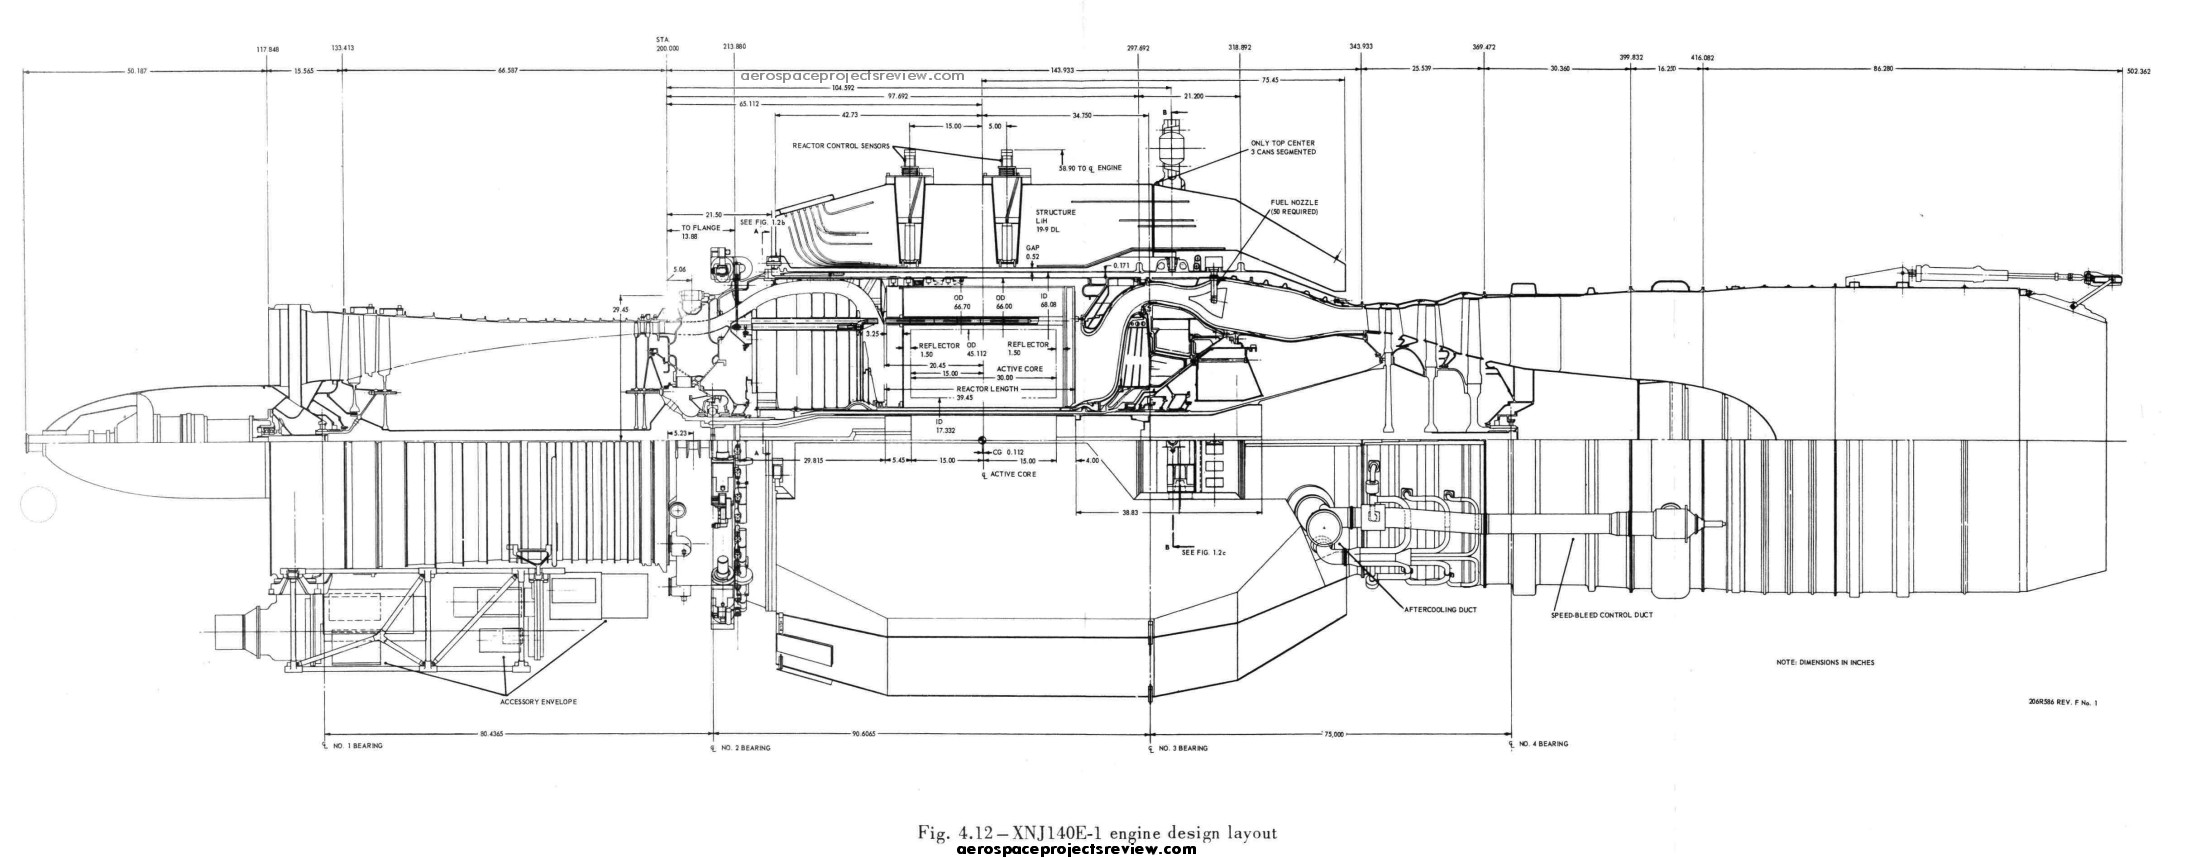 [DIAGRAM_4FR]  F414 Engine Diagram. f414 mtu aero engines. matt larson 39 s studio 3d.  livefist this is huge ge f414 engine lowest bidder to. the f414 engine ge  aviation. file bristol olympus 101 | F414 Engine Diagram |  | 2002-acura-tl-radio.info